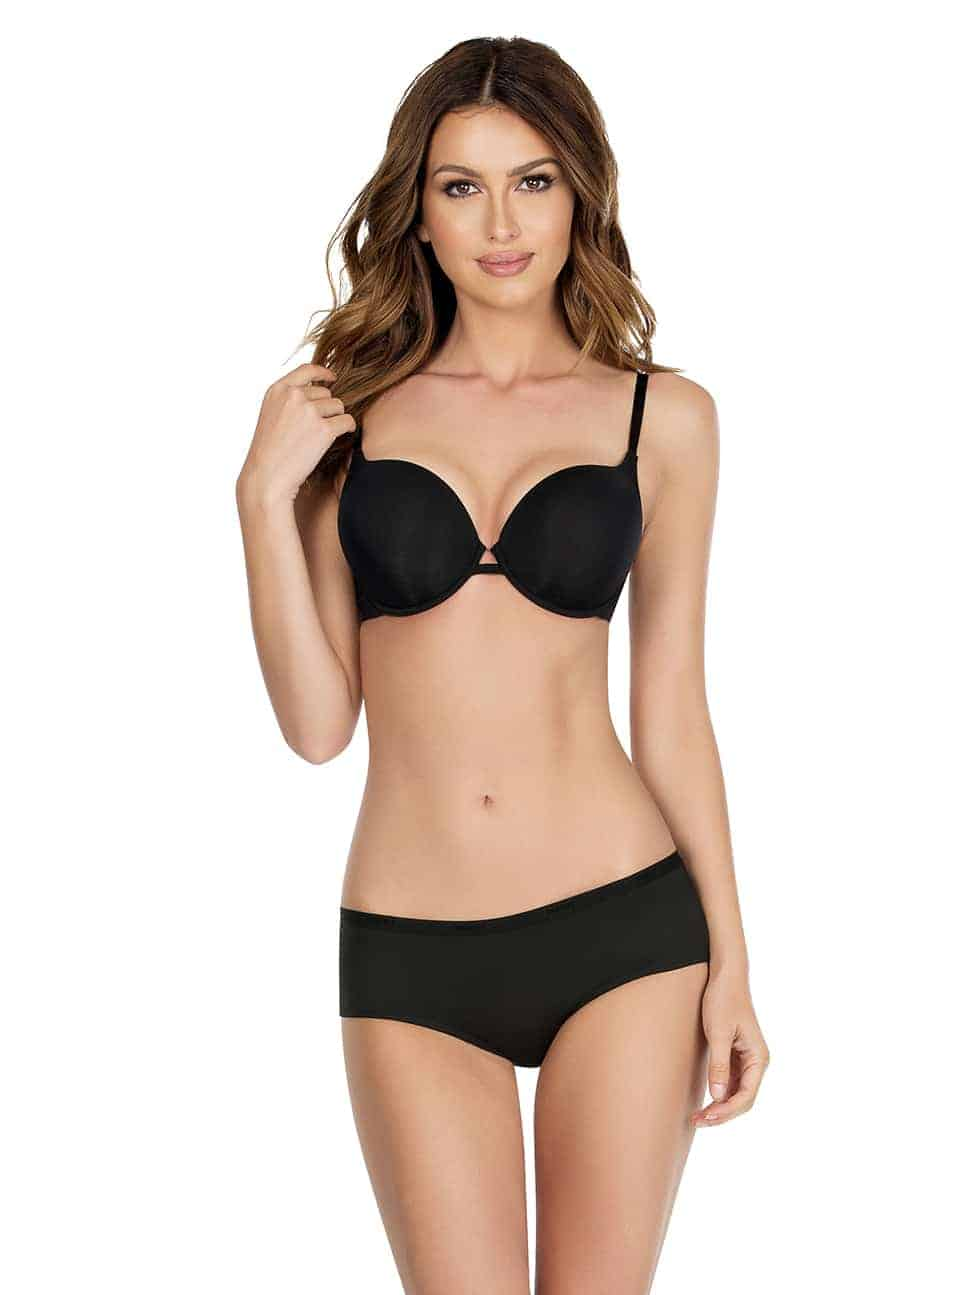 Lynn P13021 P13015 - Lynn Super Push-up Bra - Black - P13021